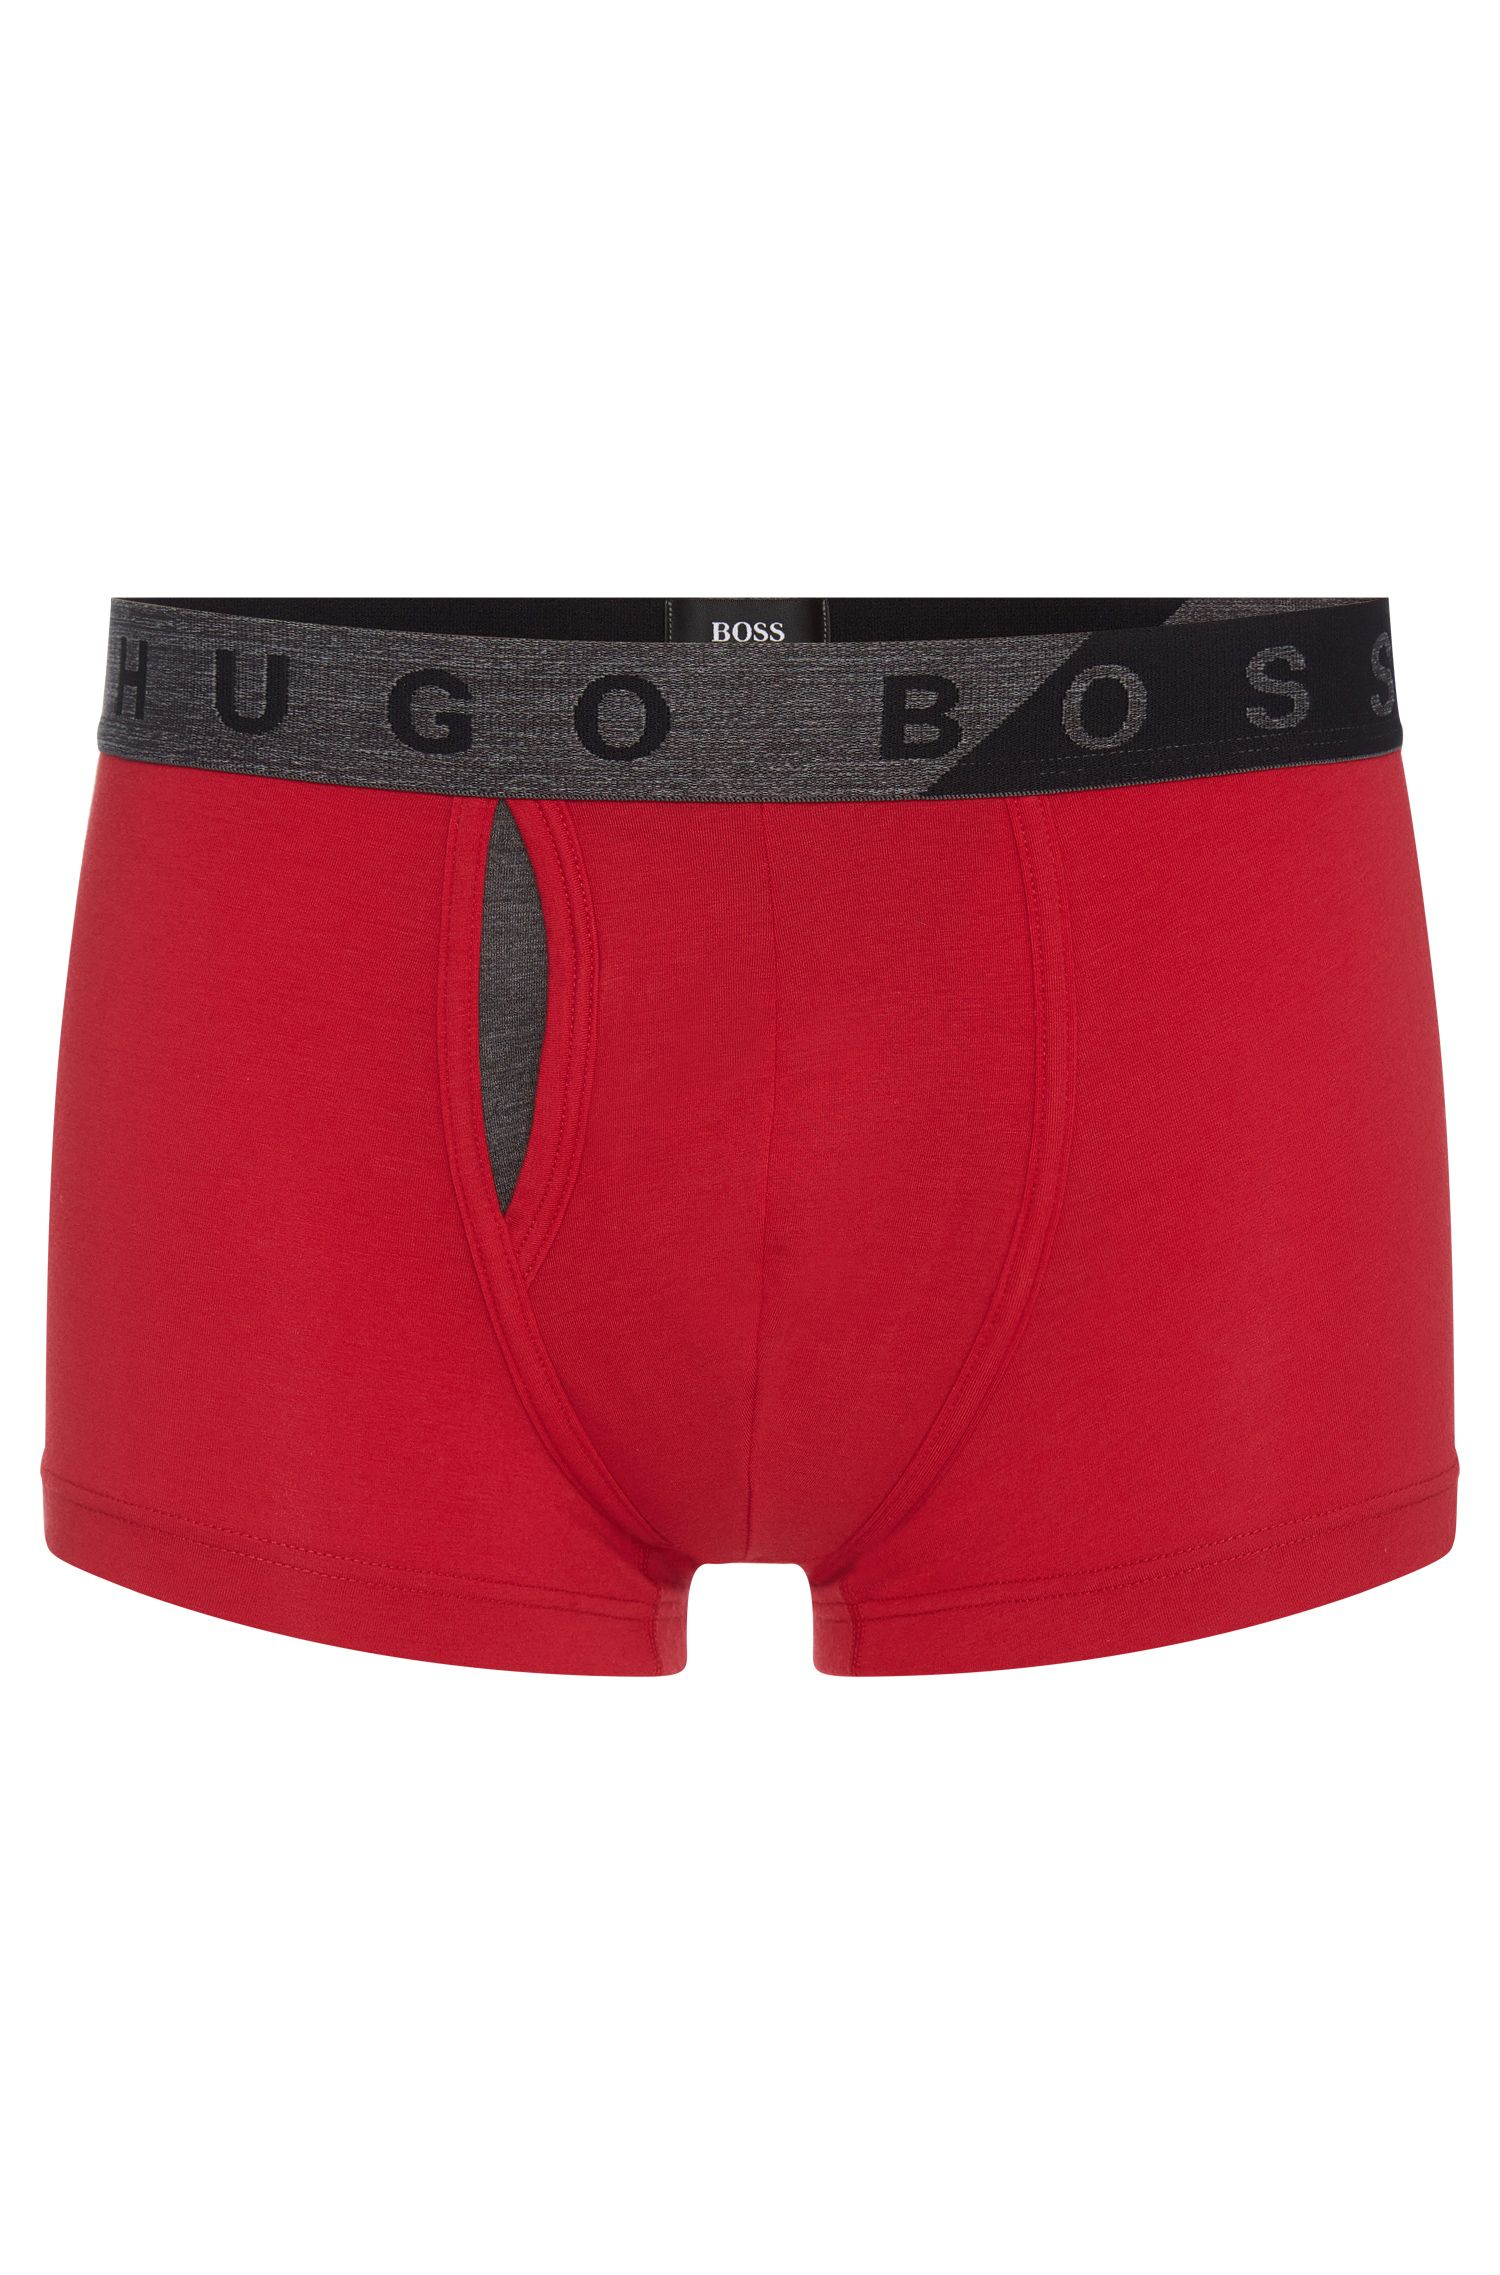 Stretch Cotton Modal Trunk | Trunk Comfort, Red